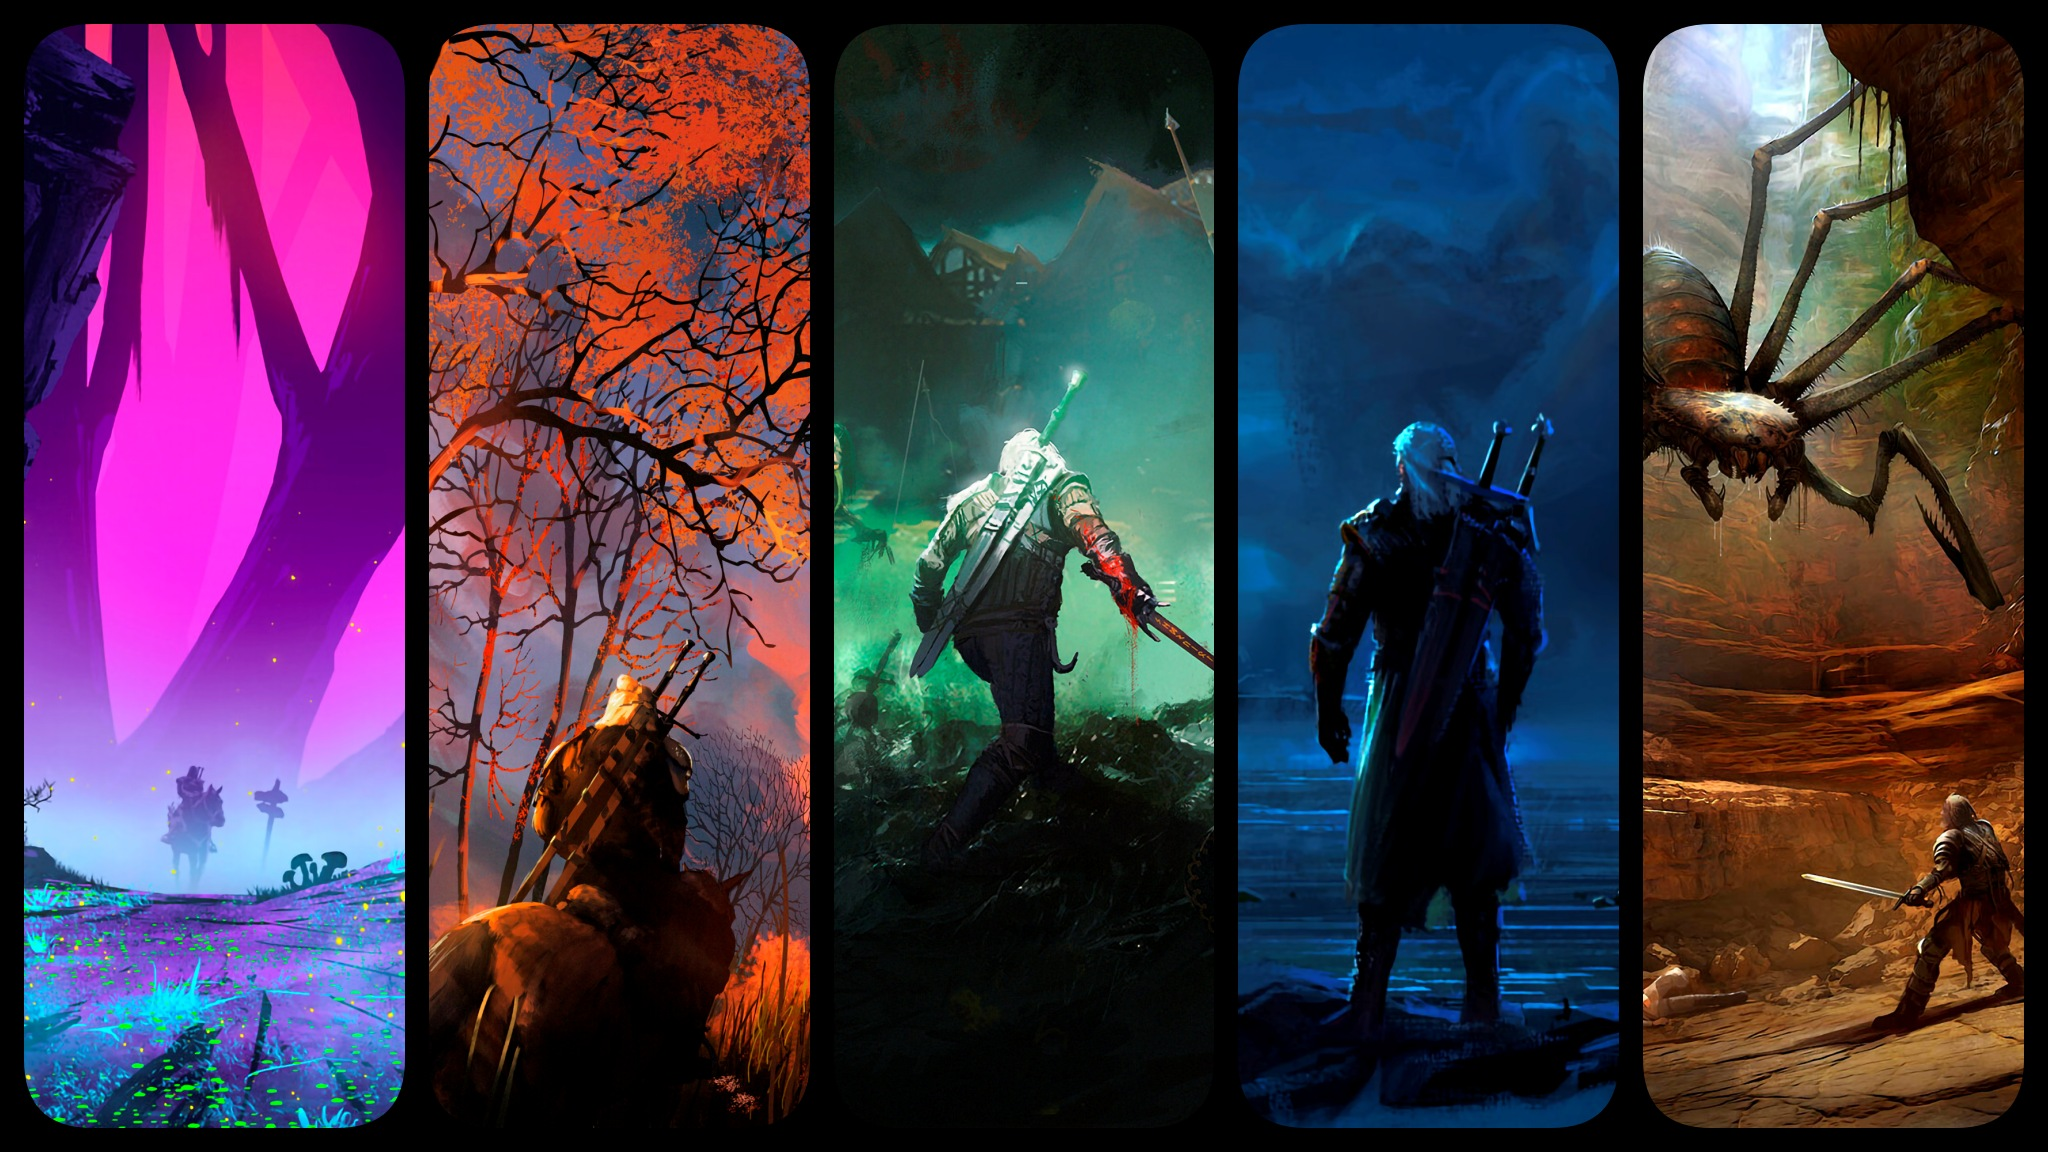 The Witcher mobile phone wallpaper collection